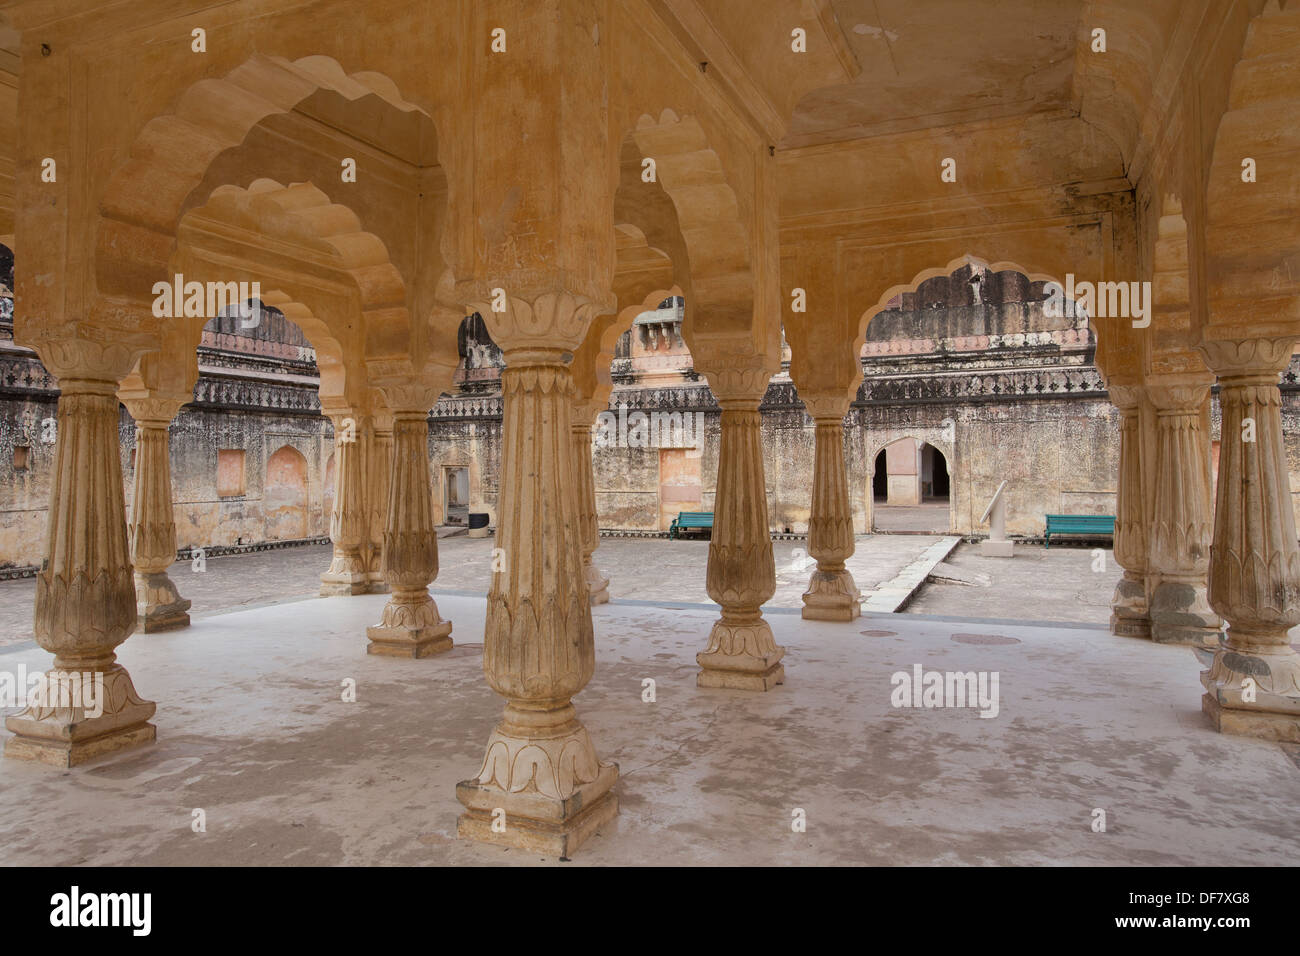 Baradhari Pavilion at Man Singh  Palace Square.  The Palace of Man Singh I is the oldest part of Amer Fort. - Stock Image